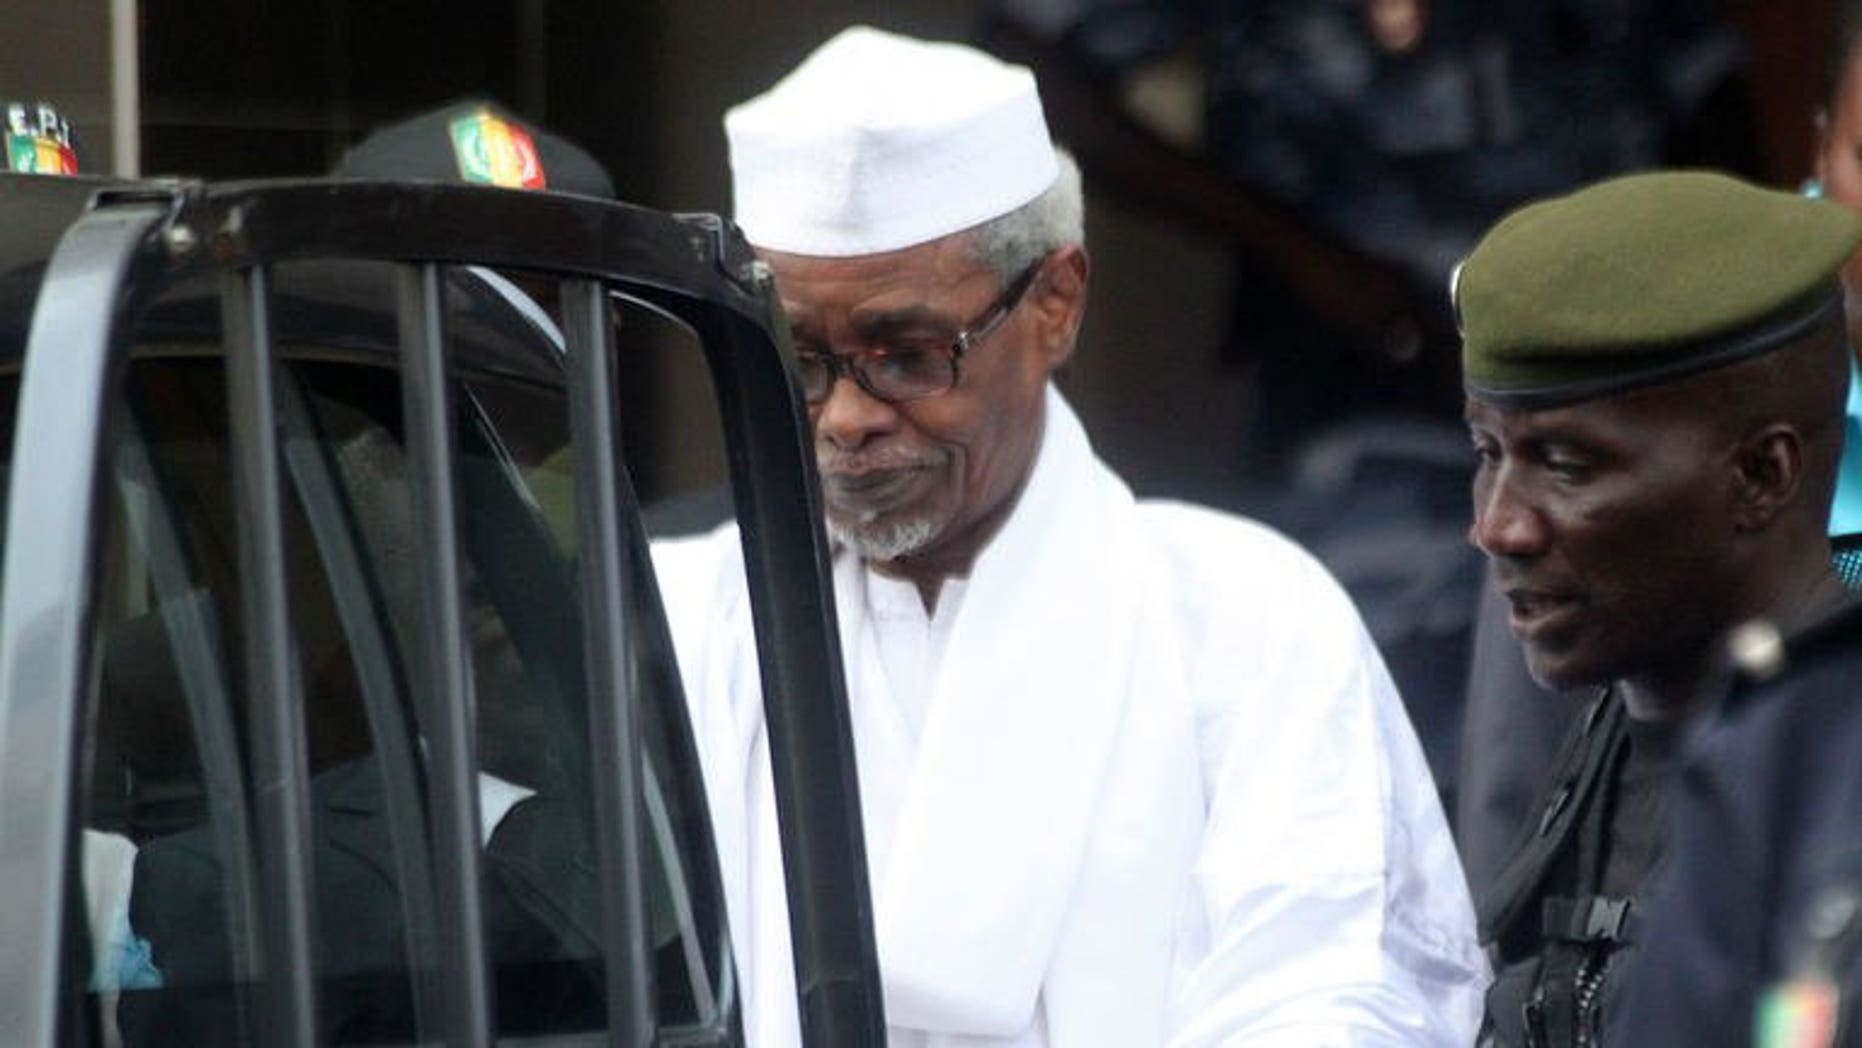 Former Chadian dictator Hissene Habre is escorted by military officers after being heard by judge on July 2, 2013 in Dakar. Thousands of people paraded the streets of Chad's capital N'Djamena on Friday to celebrate the arrest of former dictator Hissene Habre, held since Sunday in the Senegalese capital of Dakar.